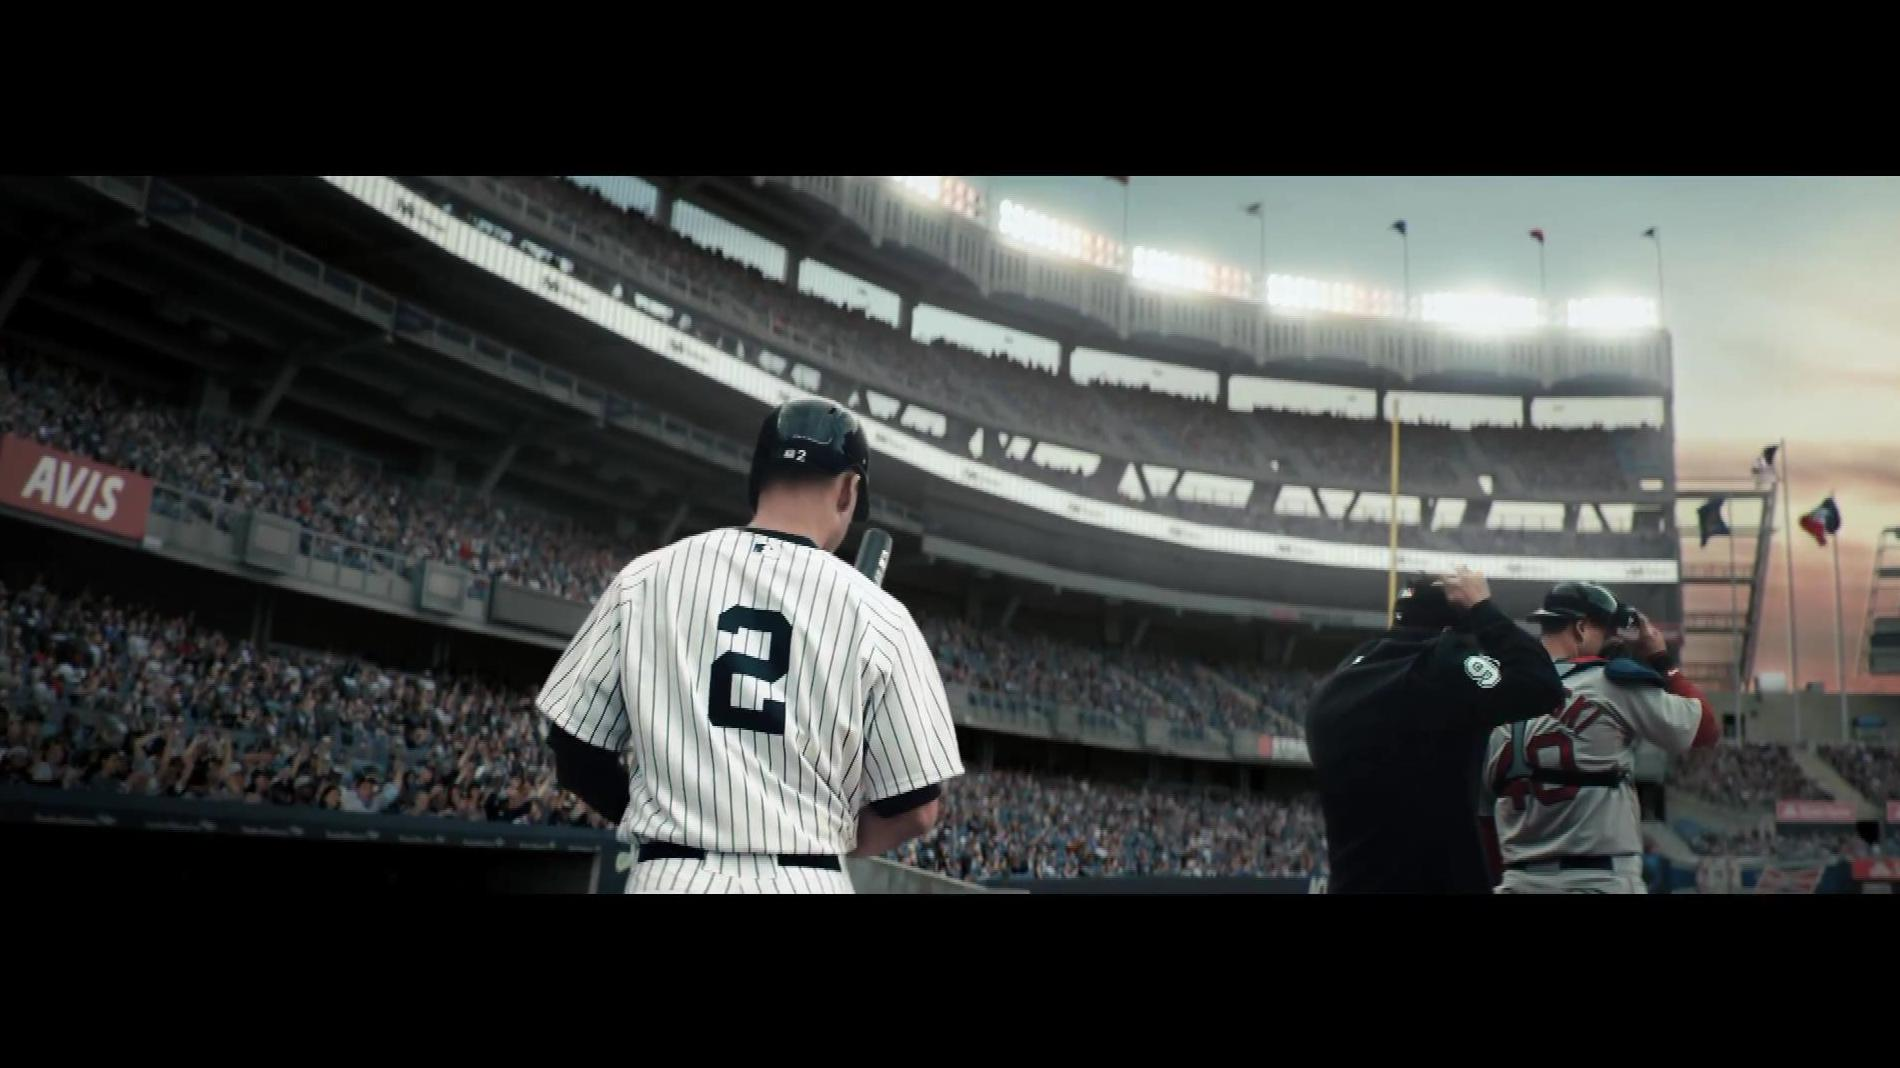 Free Download The Gallery For Derek Jeter Respect Iphone